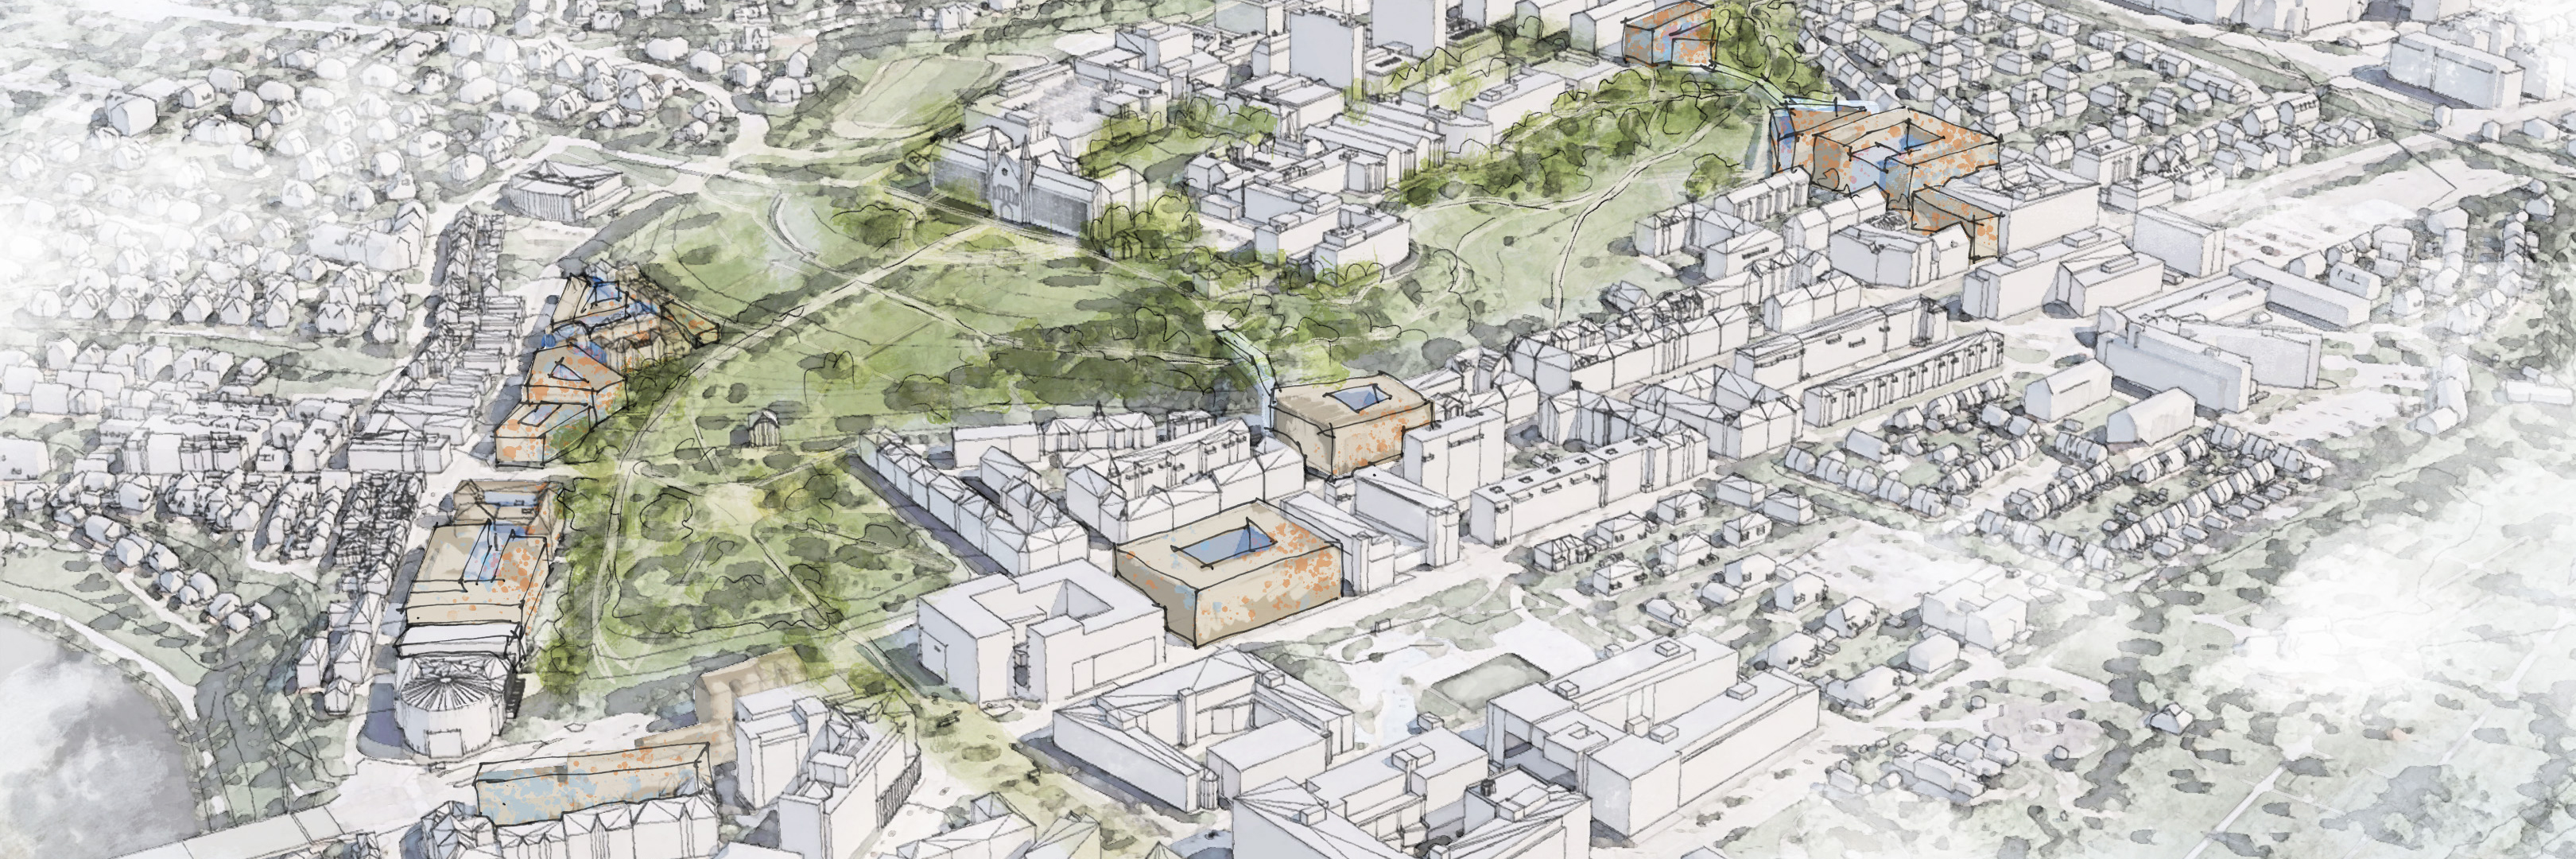 Illustration from the feasibility studies around Gløshaugen. (Illustration: Eggen Arkitekter)